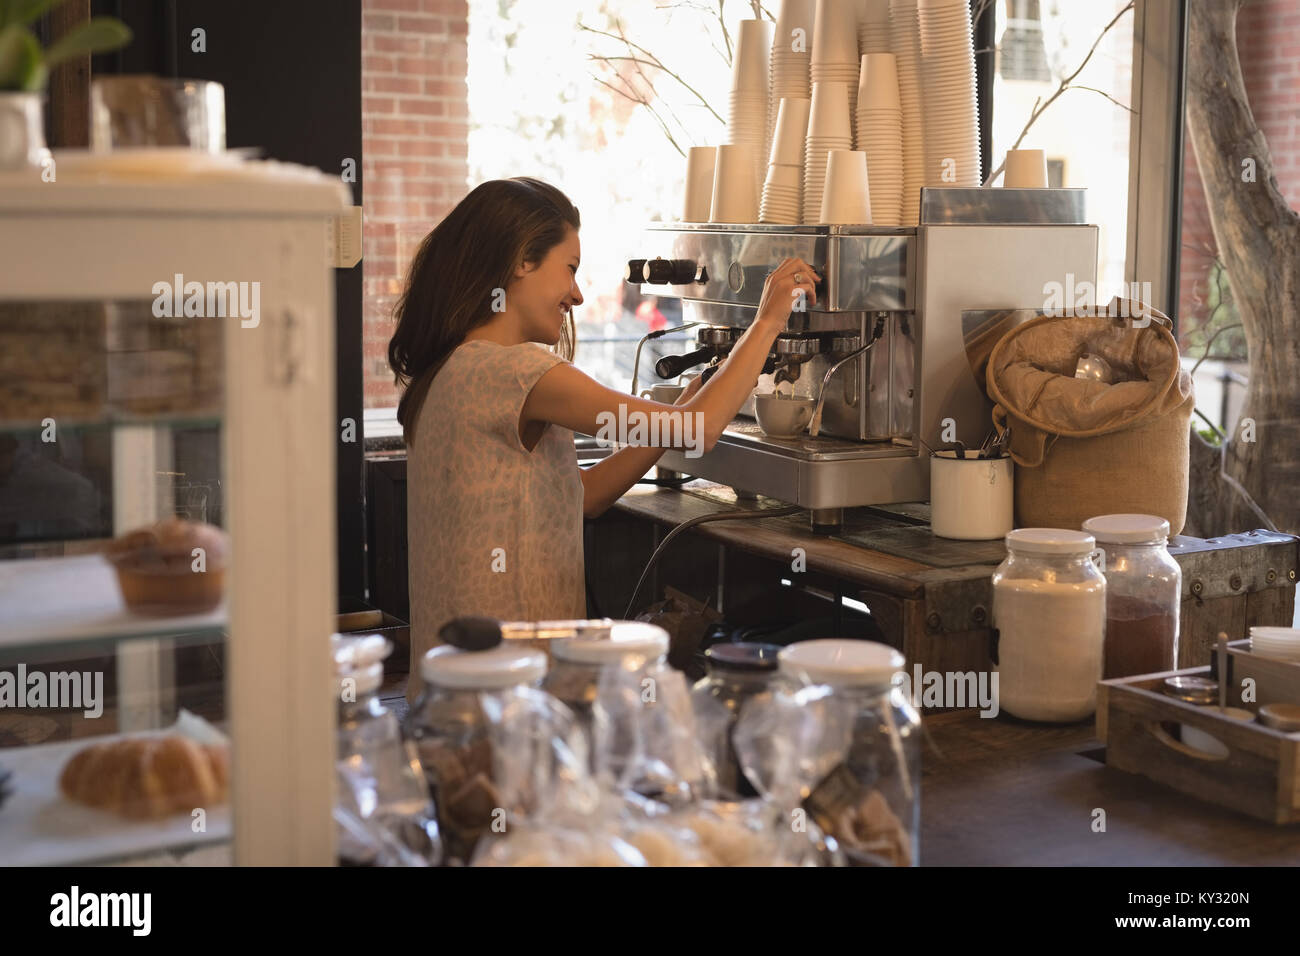 Smiling waitress making cup of coffee - Stock Image